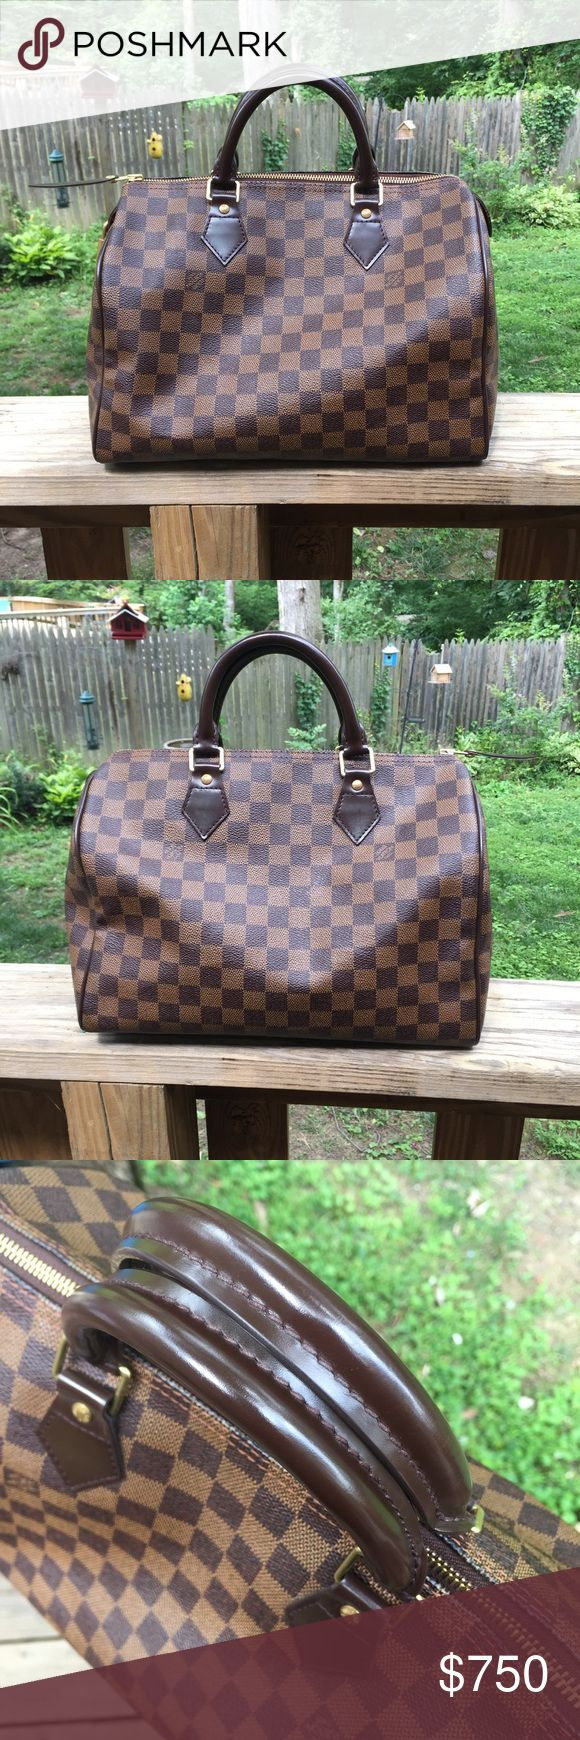 Authentic Louis Vuitton Speedy 30 Damier Ebene Authentic Louis Vuitton Speedy 30 in Damier Ebene. Bag is in overall very good to excellent condition, showing only minor signs of wear. There is a small scuff in the middle (base), minor scuffing on corners, faint knicks on handles, and a scuff on the outside tag. This bag is spotless inside! Date code is SD1038. Extremely selective trading! TV higher. Poshmark will authenticate your purchase. Thanks for looking! Louis Vuitton Bags Satchels